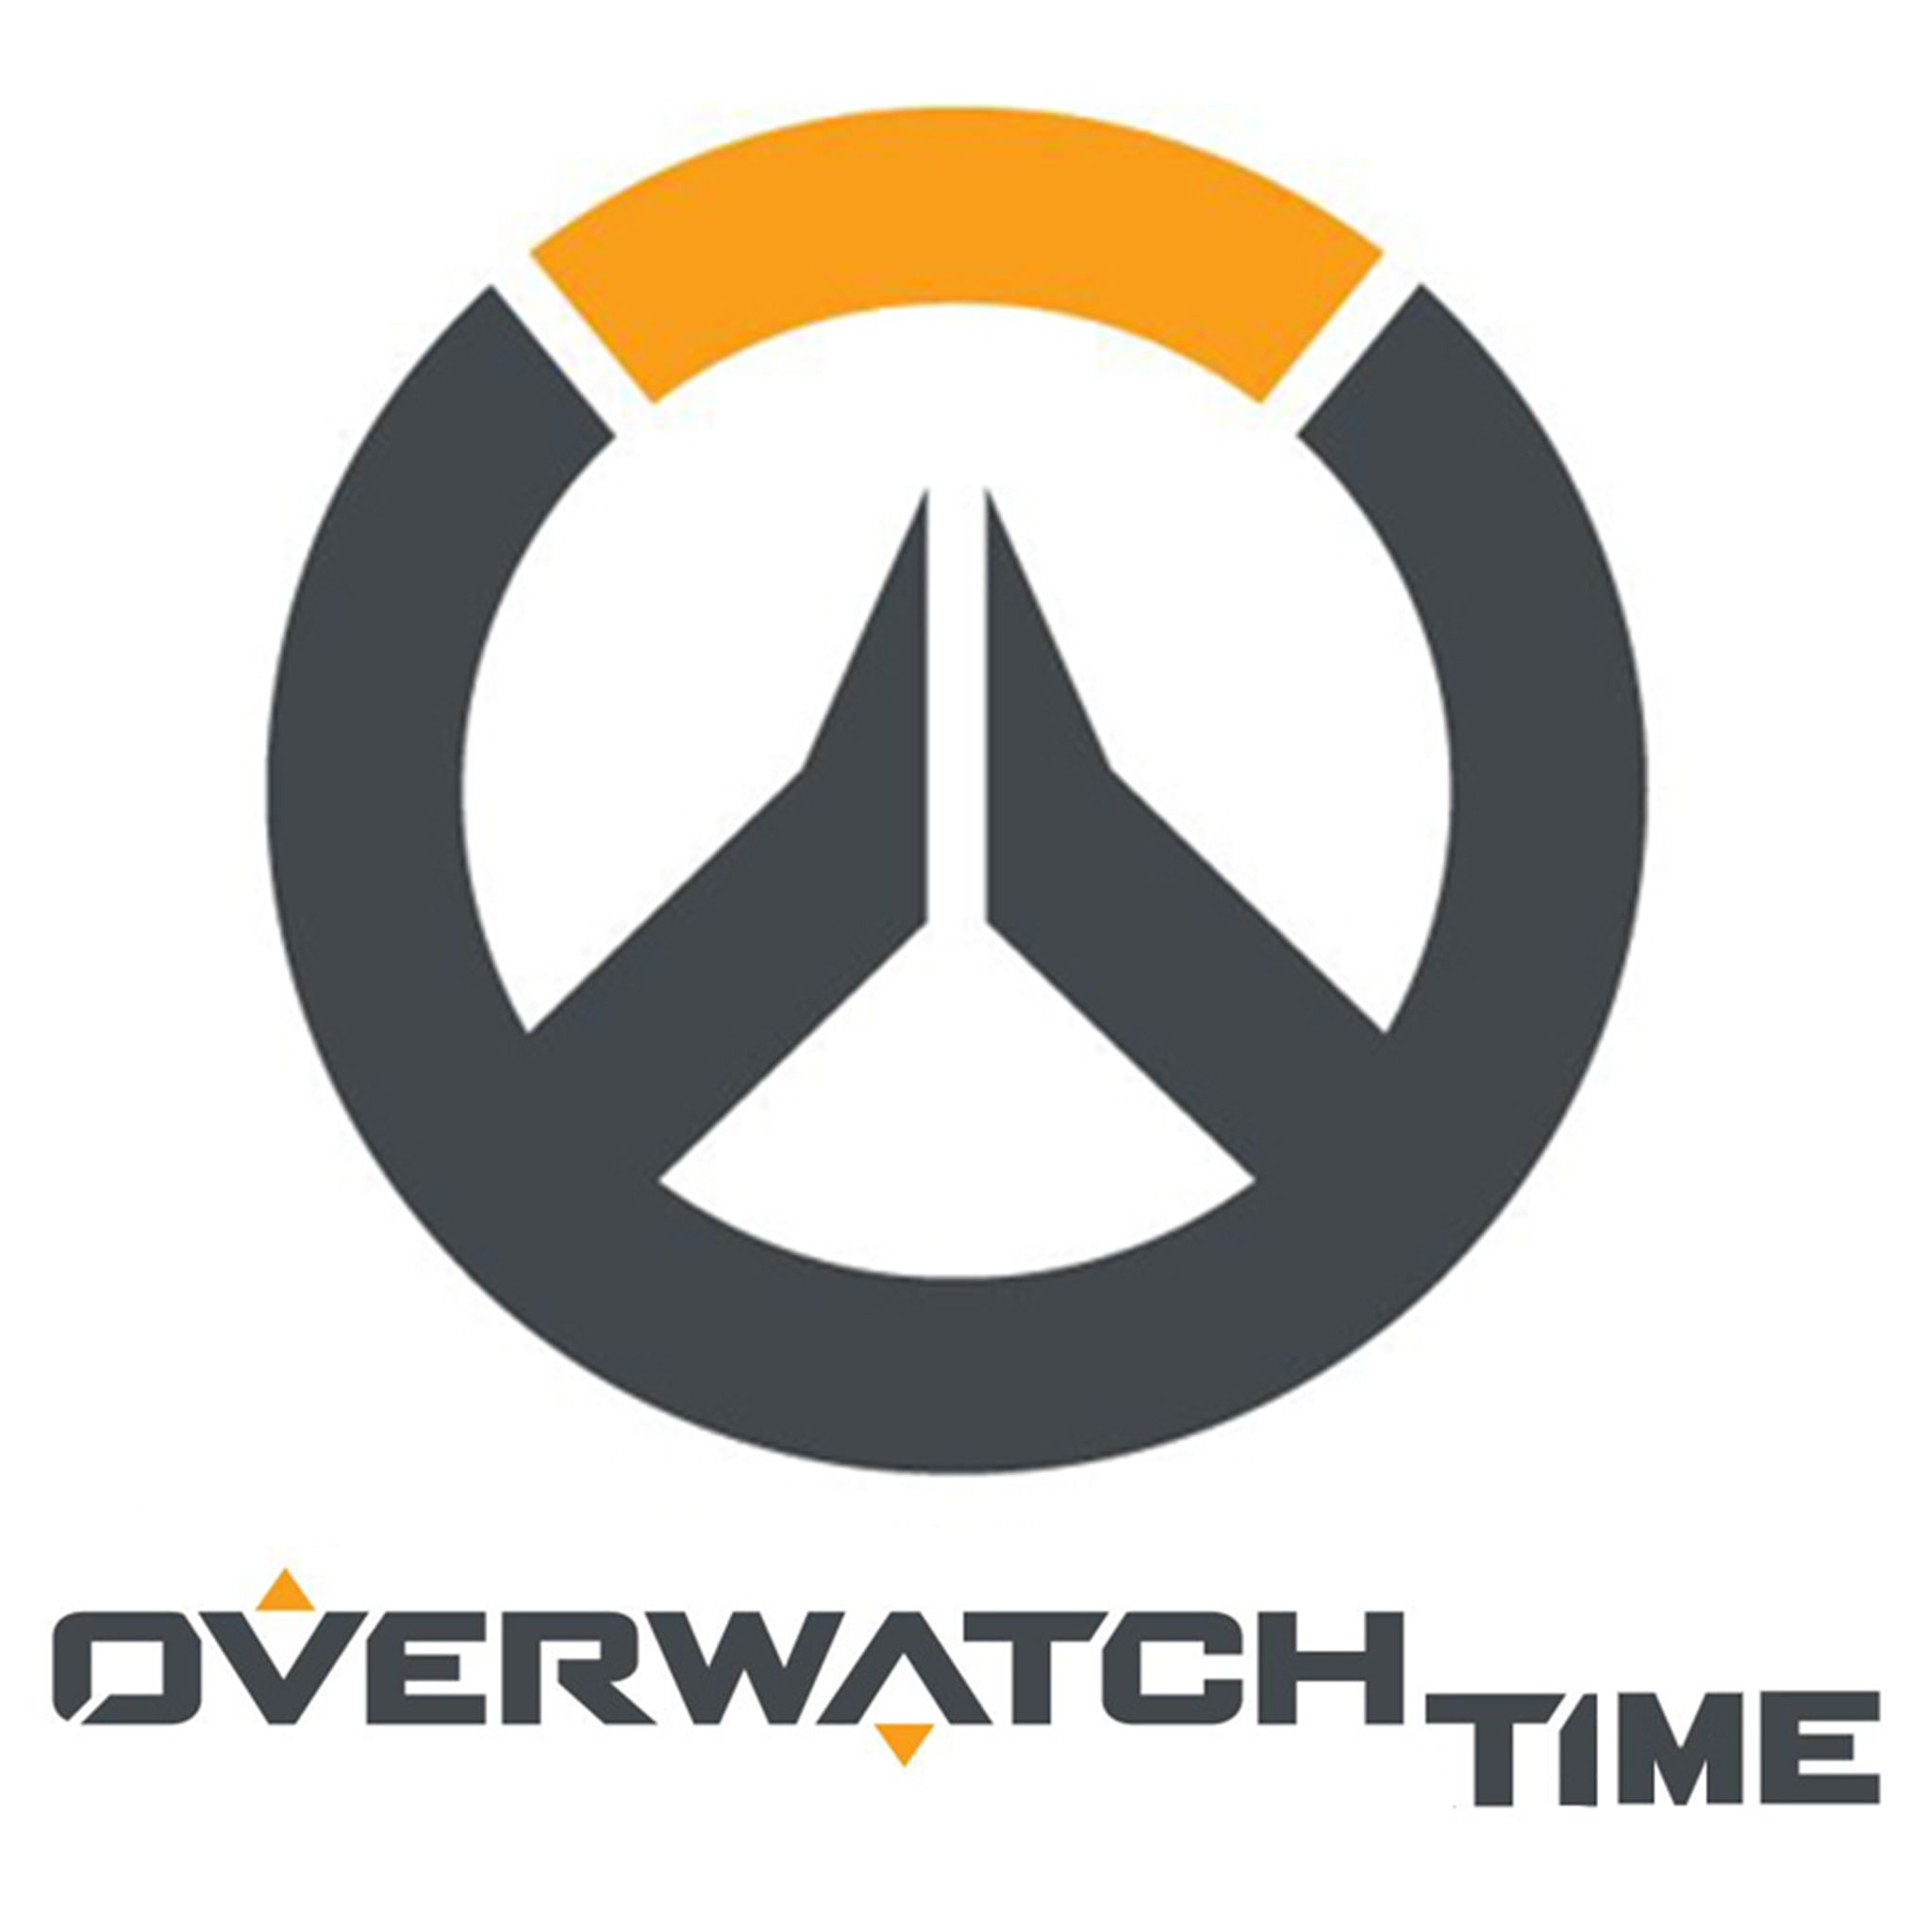 Overwatch Time